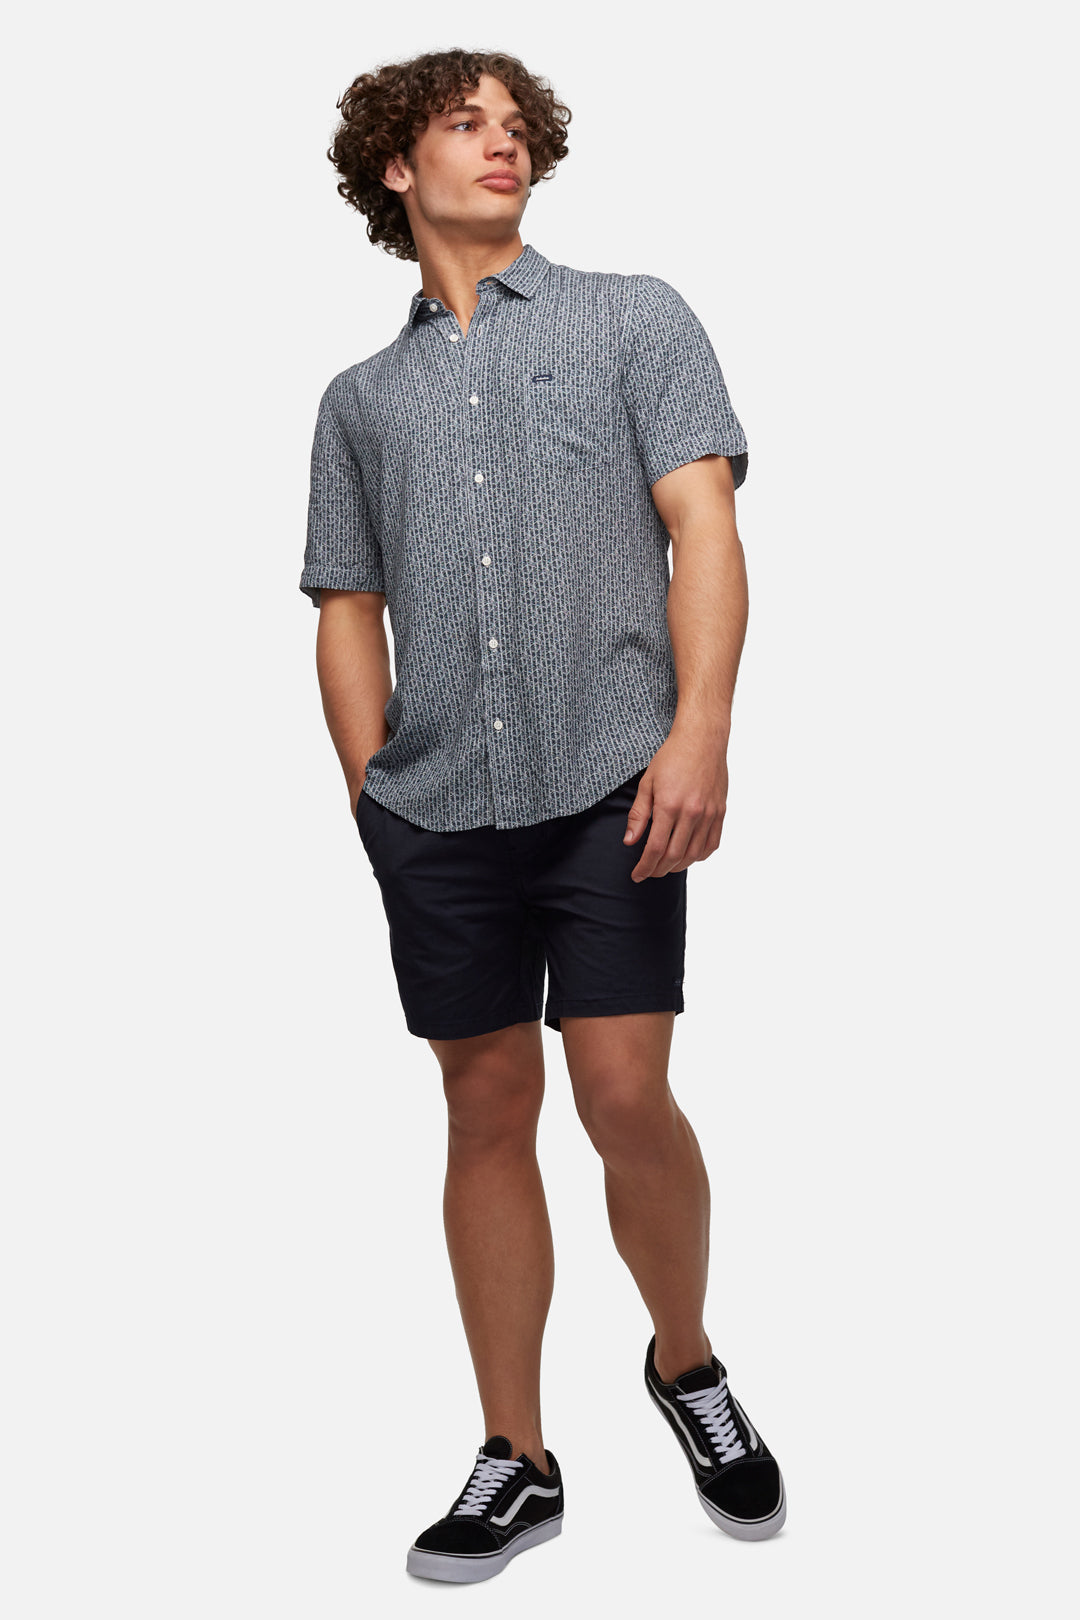 The Bahama Angler - Navy